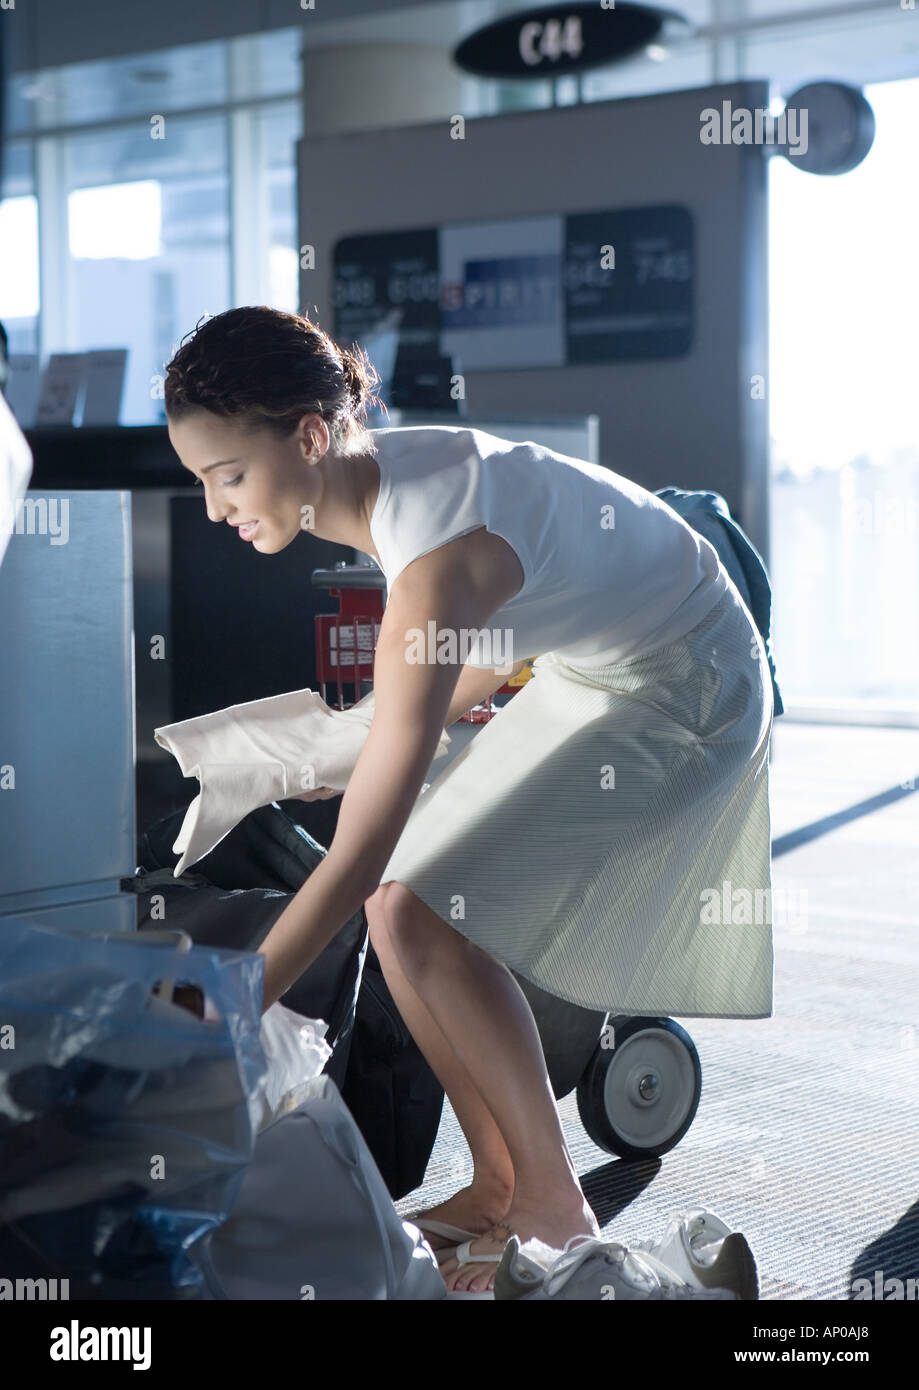 Woman bending over, looking through bags, in airport - Stock Image